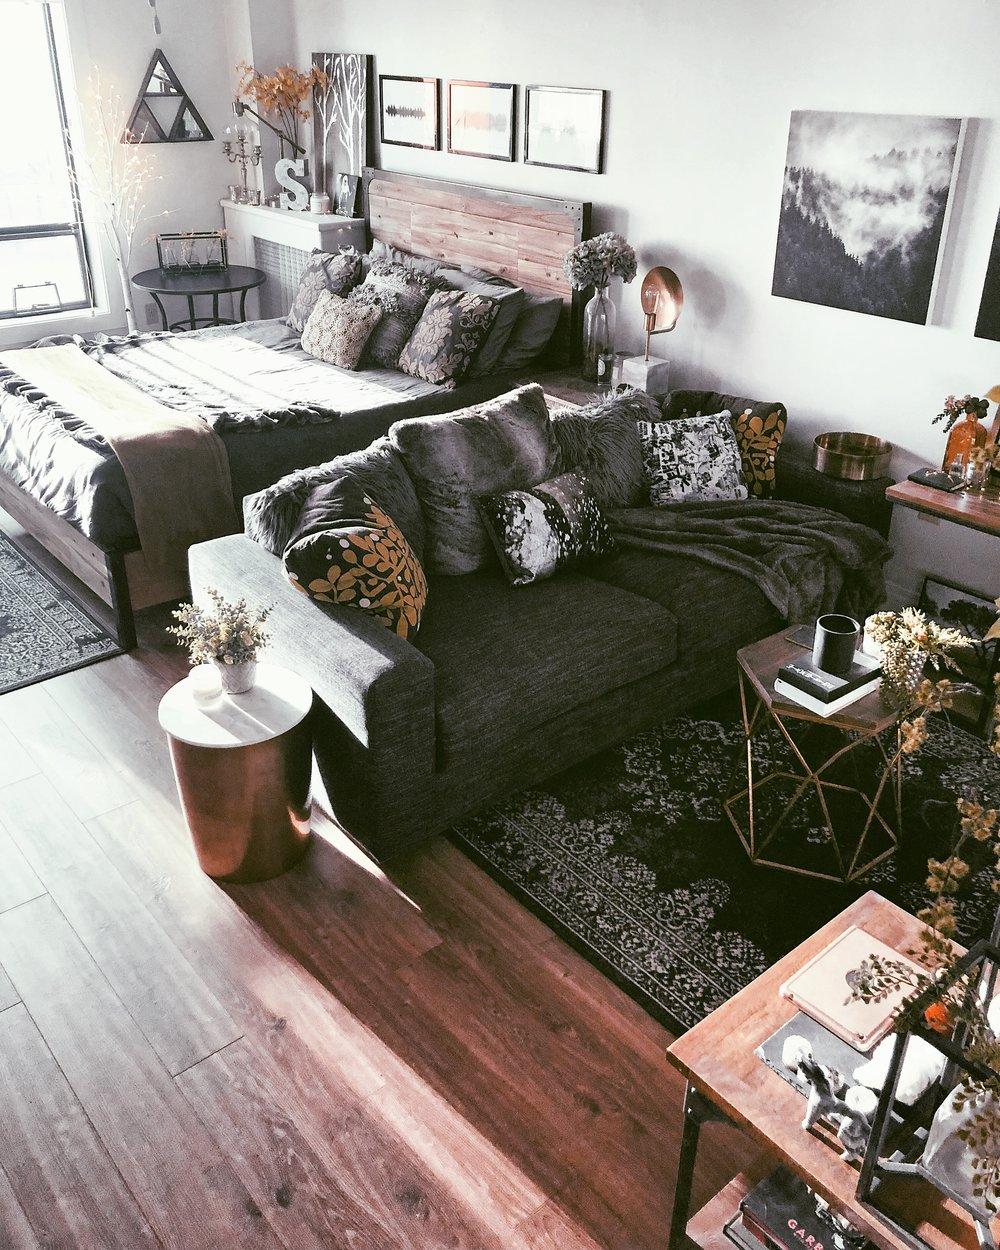 5 Tips For Styling A Studio Apartment Moda Misfit,Deep Kitchen Drawer Organizer Ikea